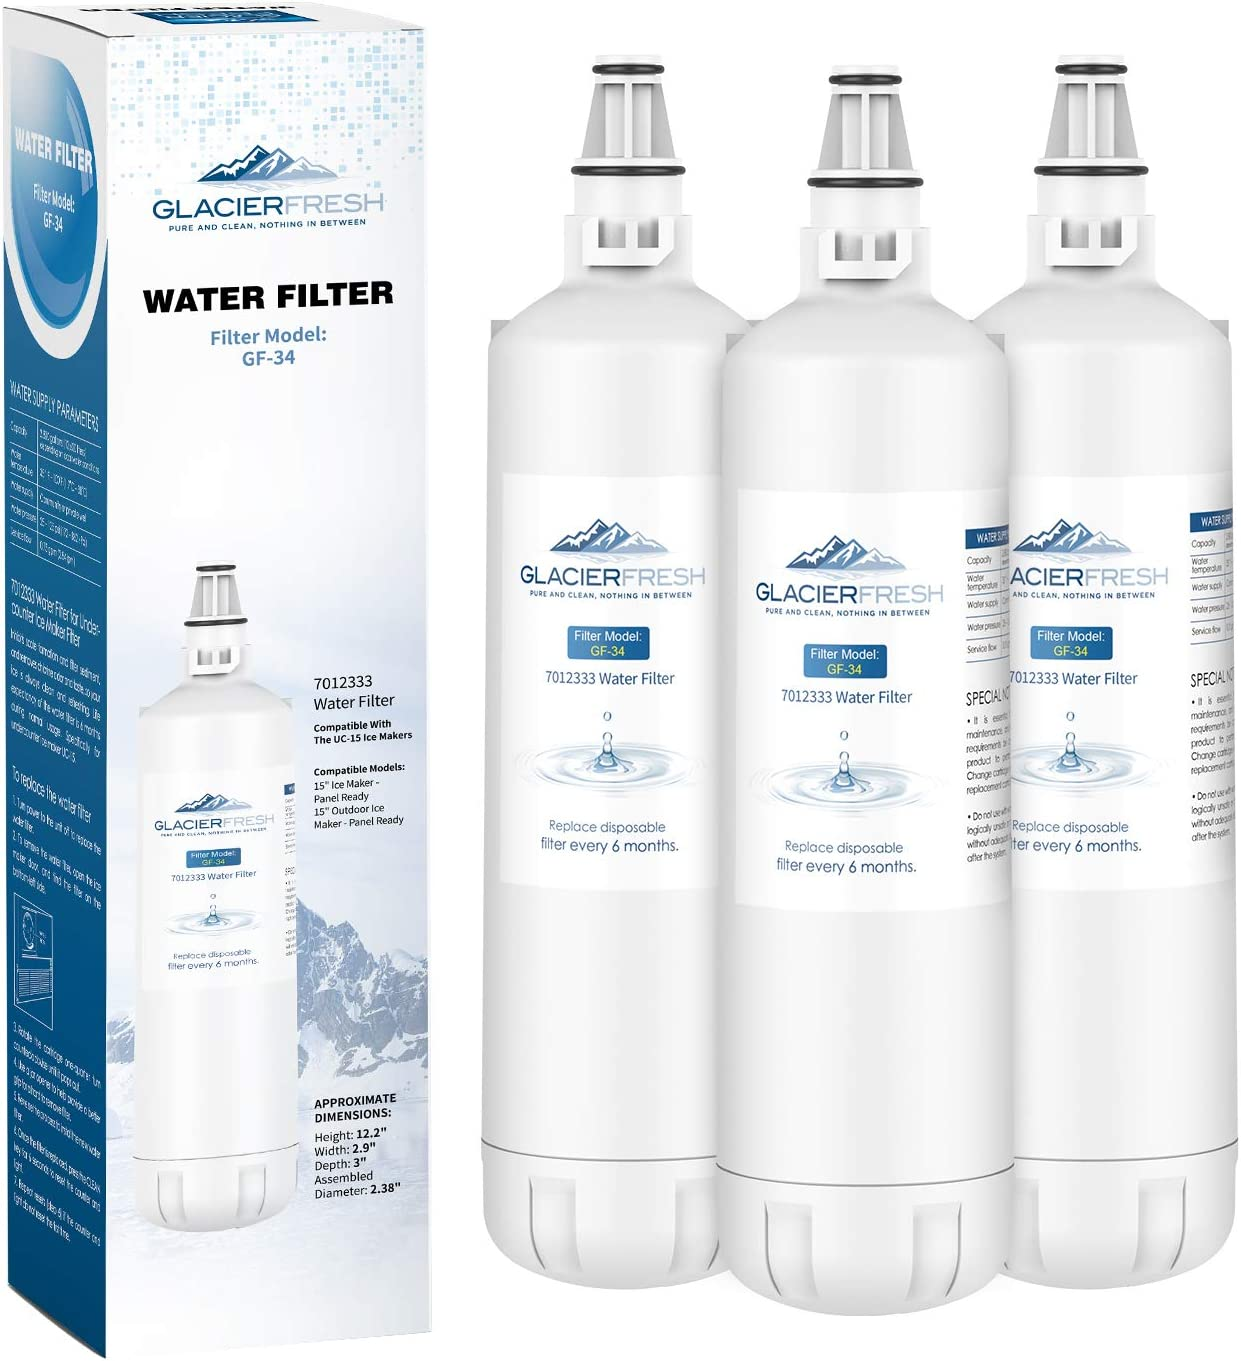 GLACIER FRESH 7012333 Ice Maker Water Filter, Compatible With Sub-Zero 7012333 Water Filter, UC-15 Ice Maker Water Filter Replacement, Manitowoc K00374 (3 Pack)